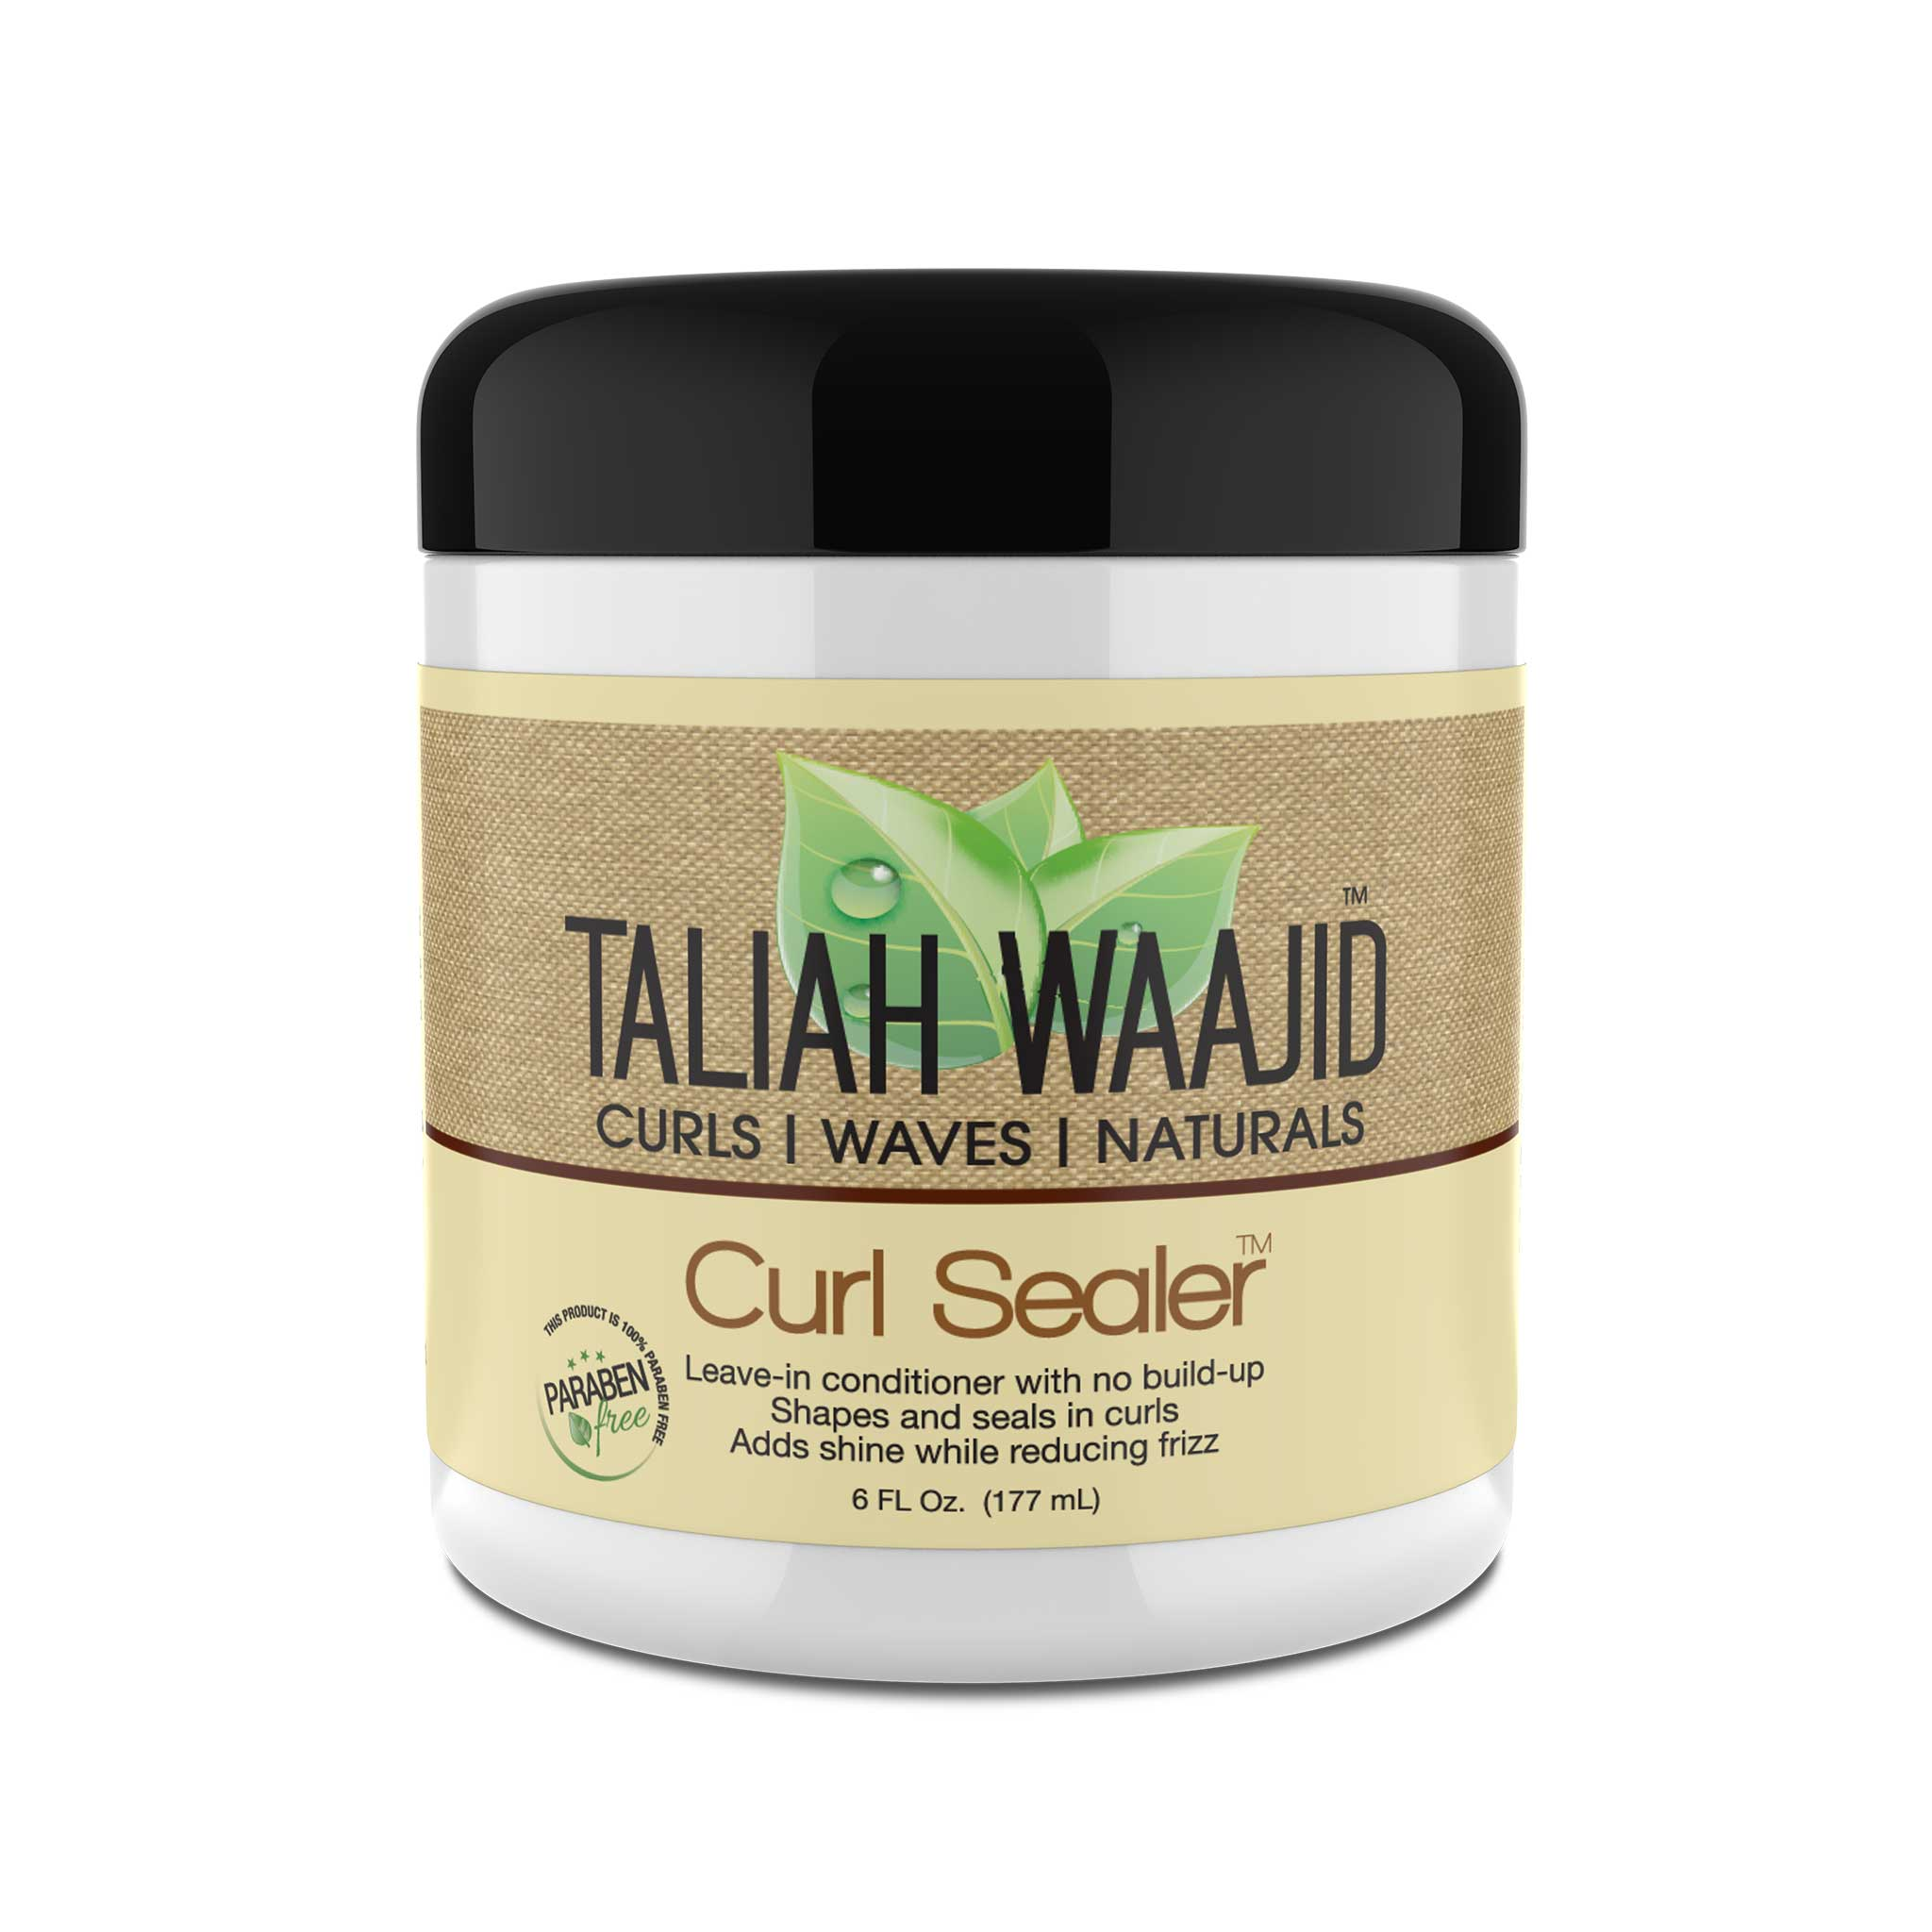 Curls, Waves & Naturals Curl Sealer 6oz